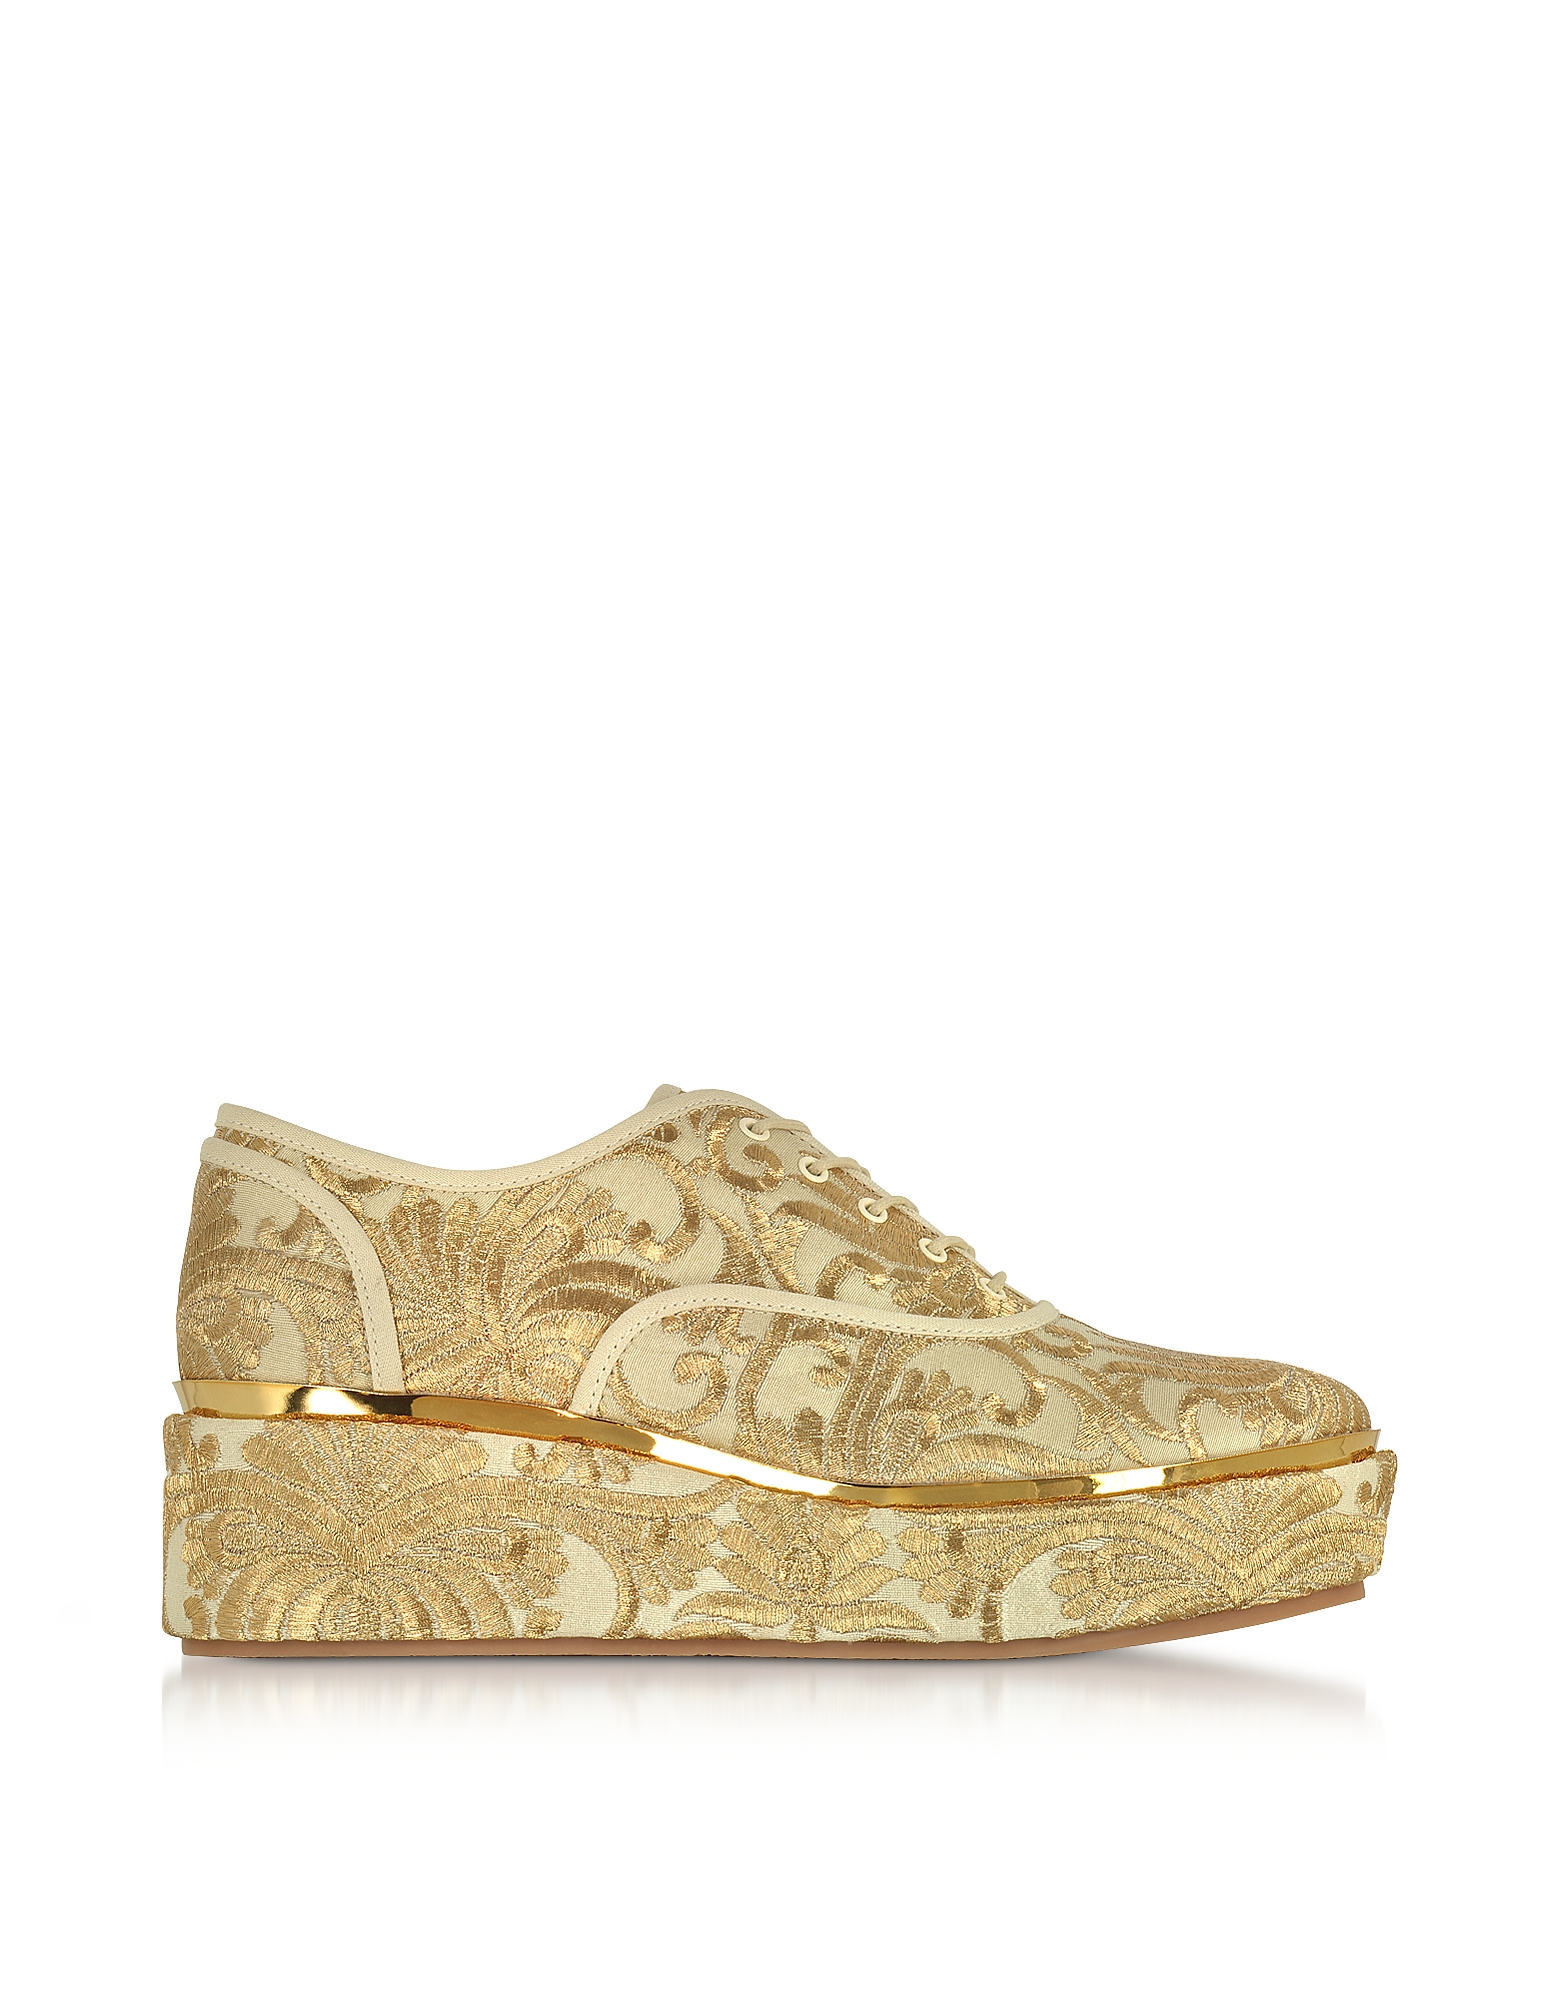 Tory Burch Shoes, Arden Beige and Gold Embroidered Brocade Platform Oxford Shoes